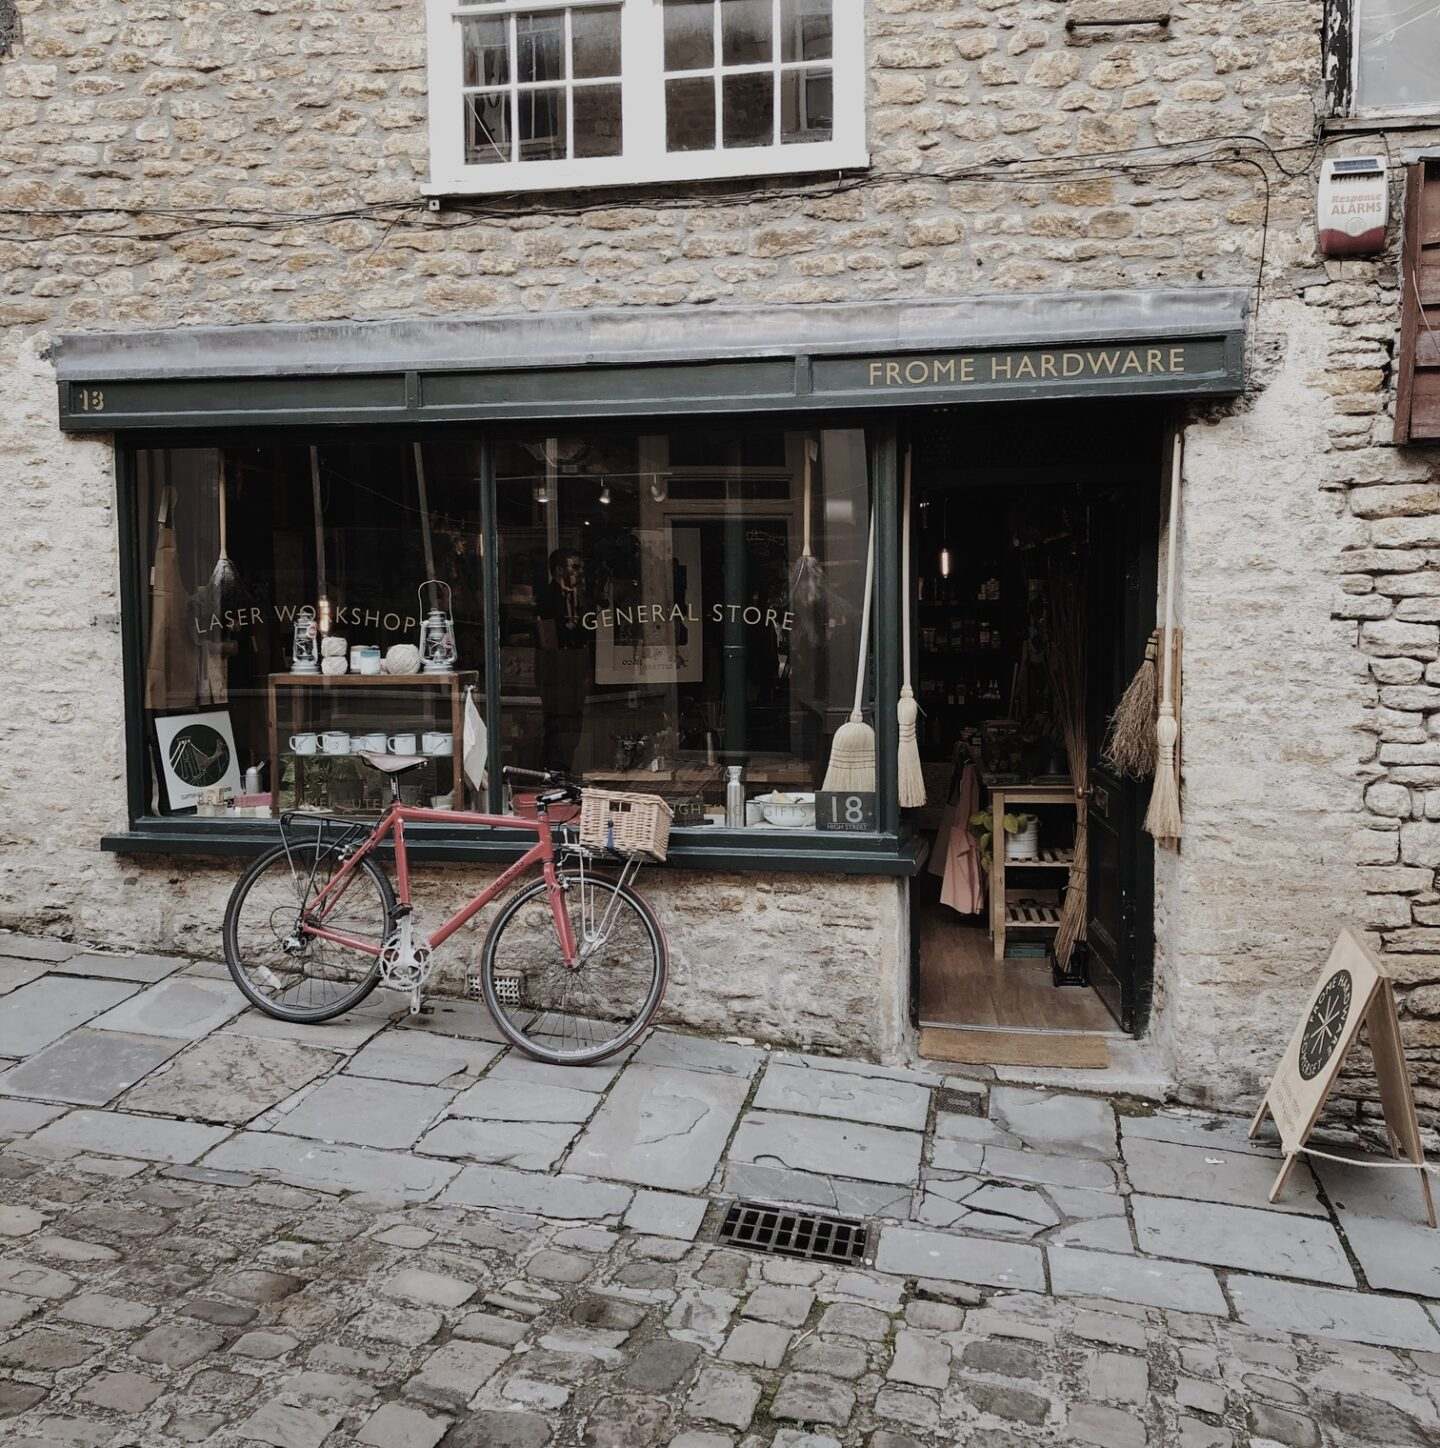 Facade of Frome Hardware with a red bicycle outside